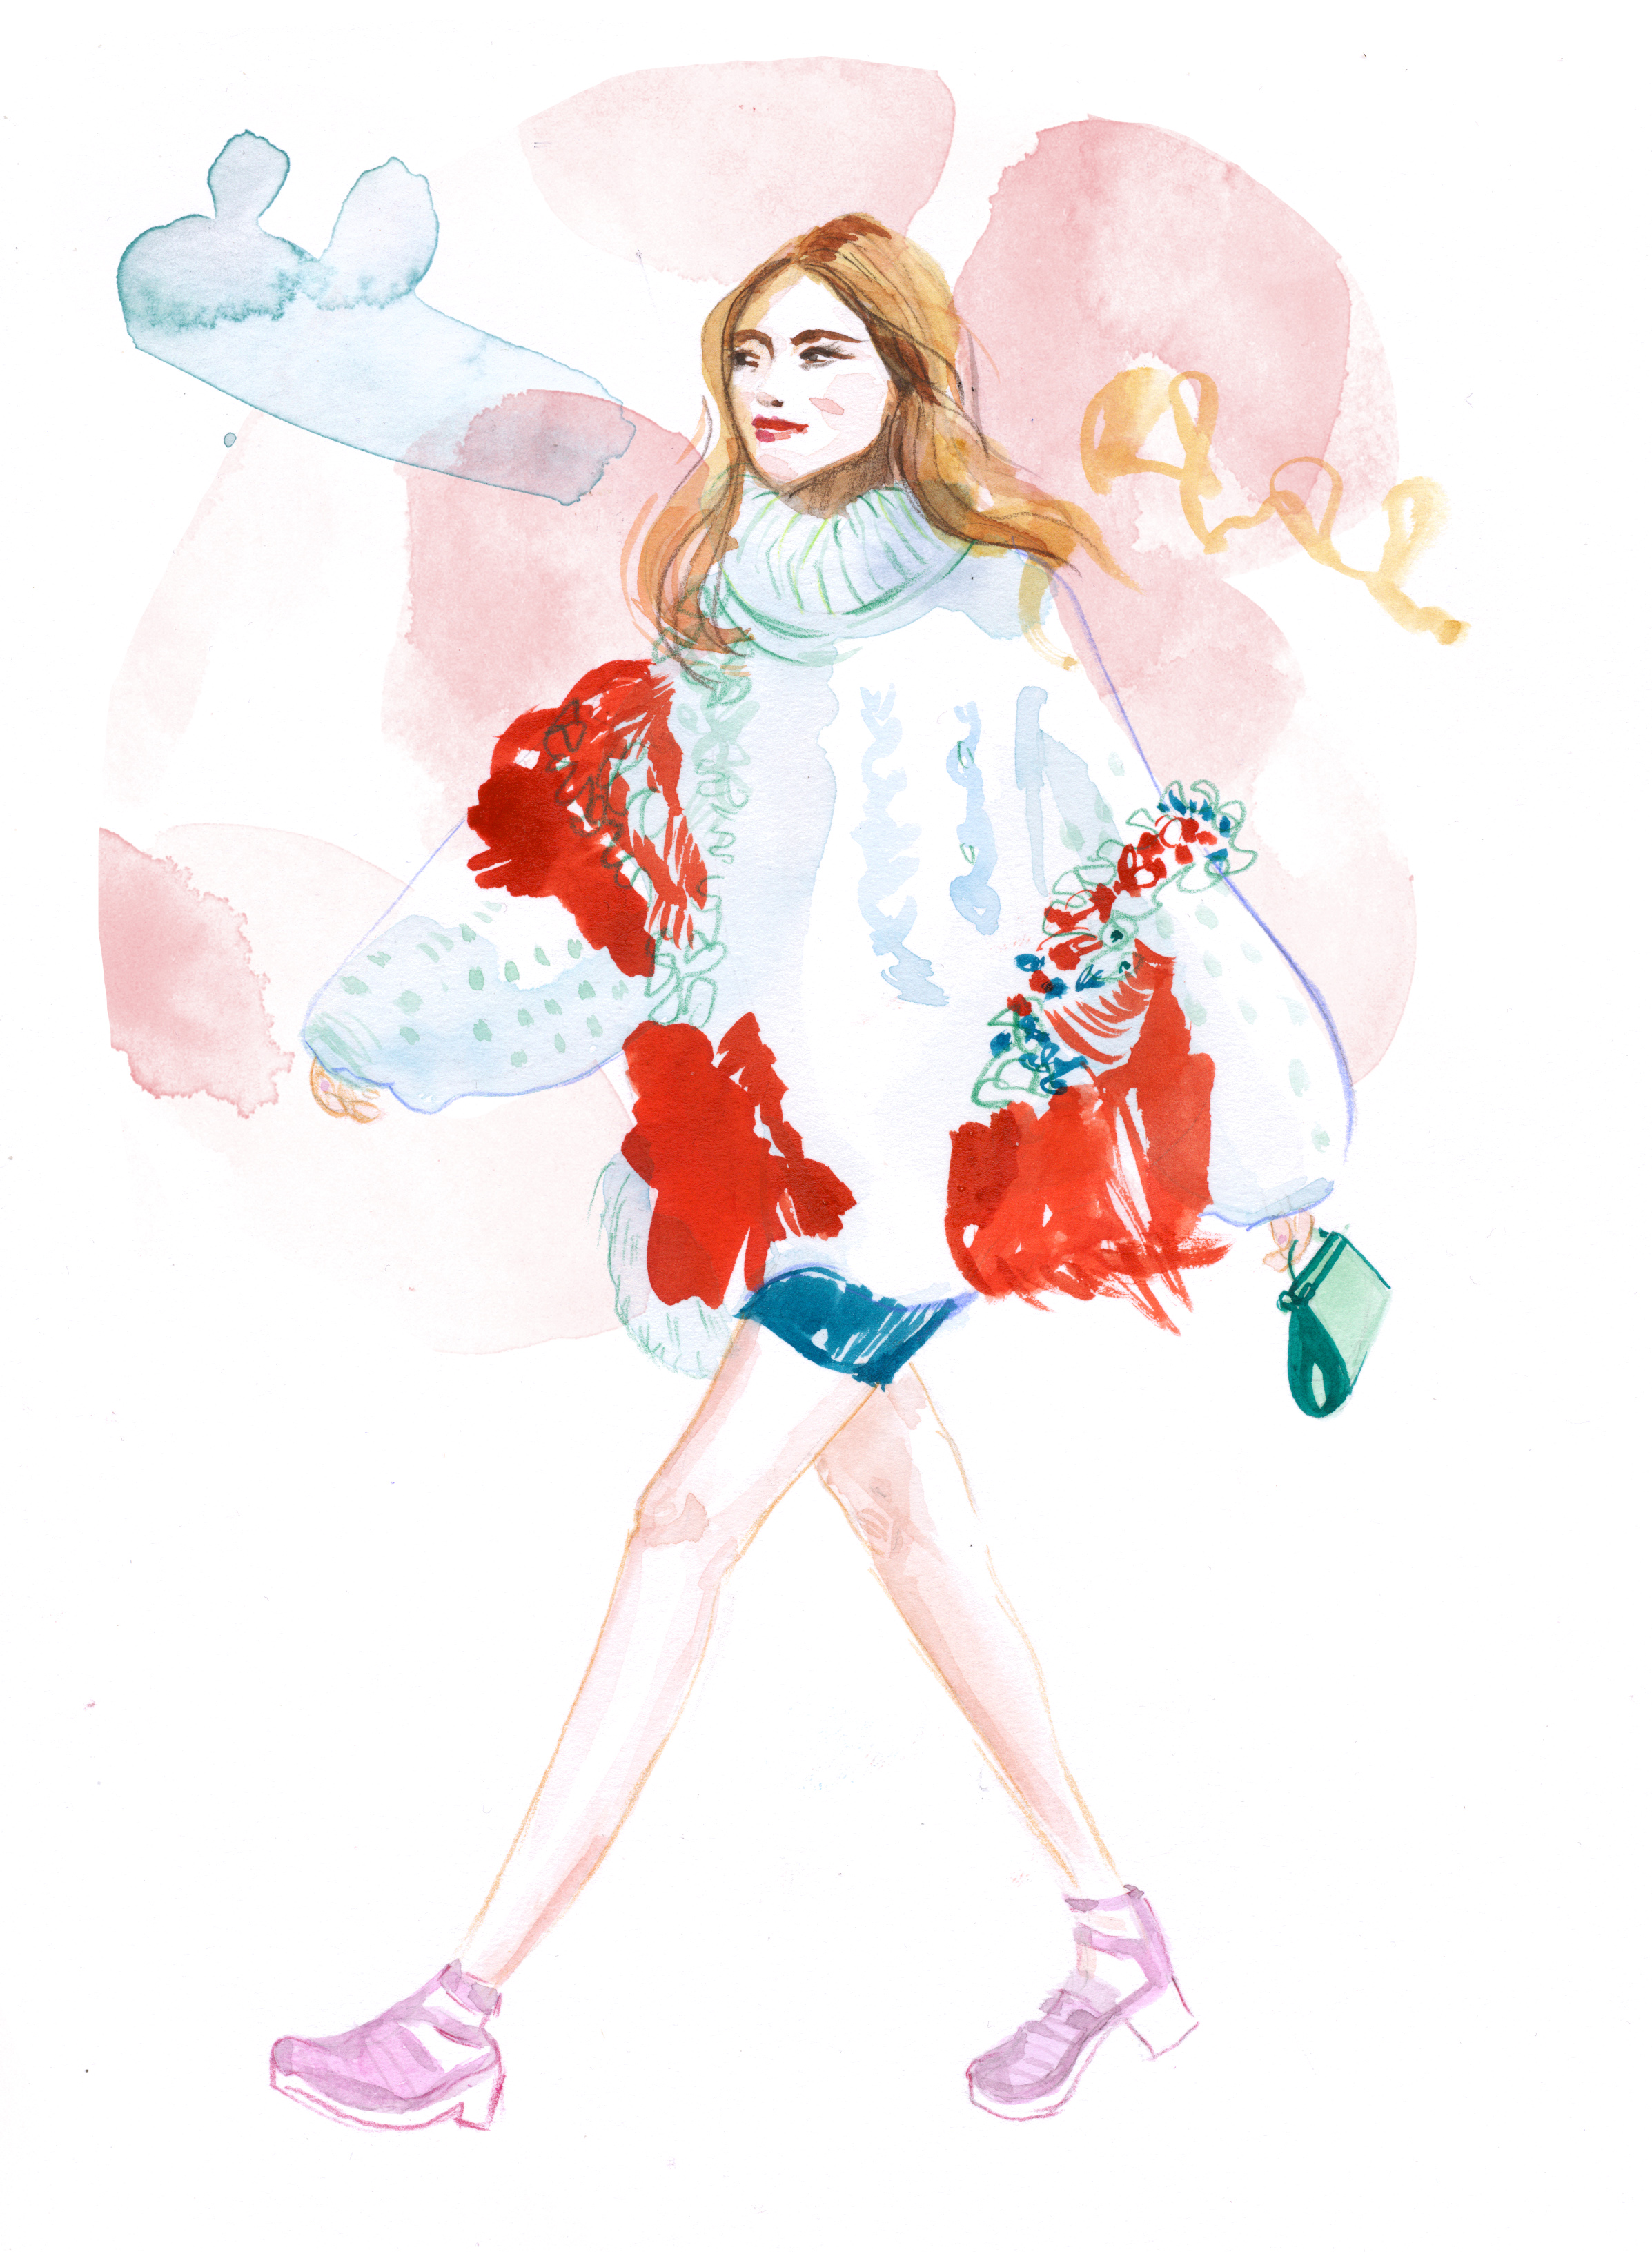 IHEARTALICE.DE - Travel, Lifestyle & Fashion-Blog from Berlin/Germany by Alice M. Huynh: Streetstyle Fashion Illustrations by Aivy Pham / Youtube Video / BUN BAO CHANNEL / Chiara Ferragni Streetstyle